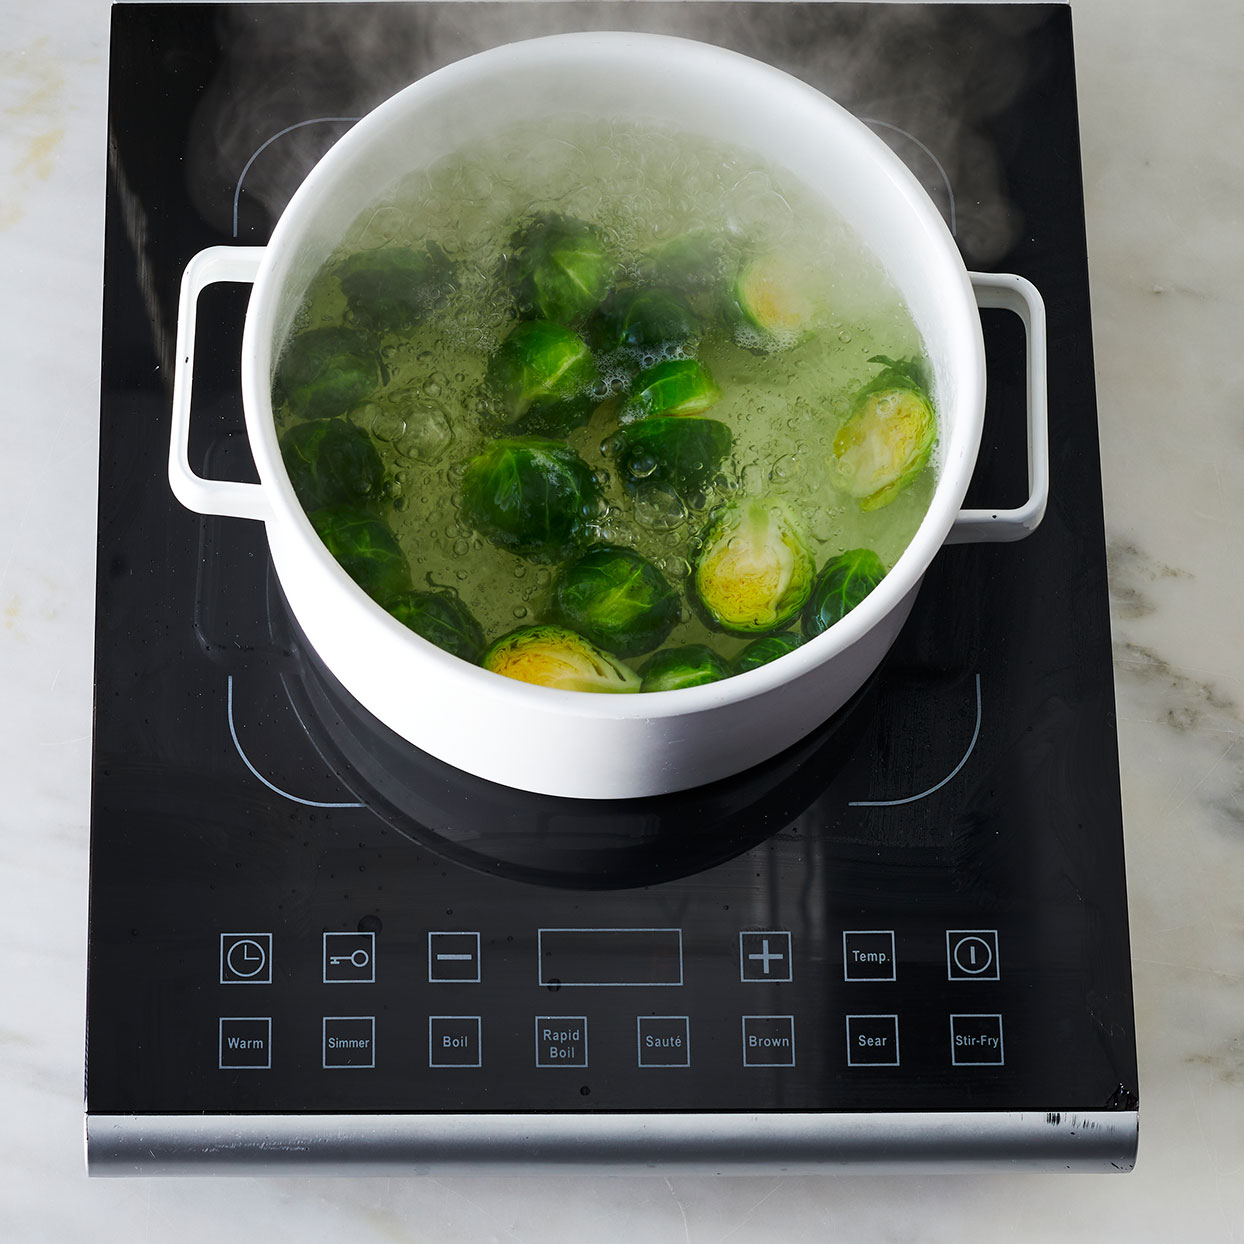 Boiled-brussels-sprouts